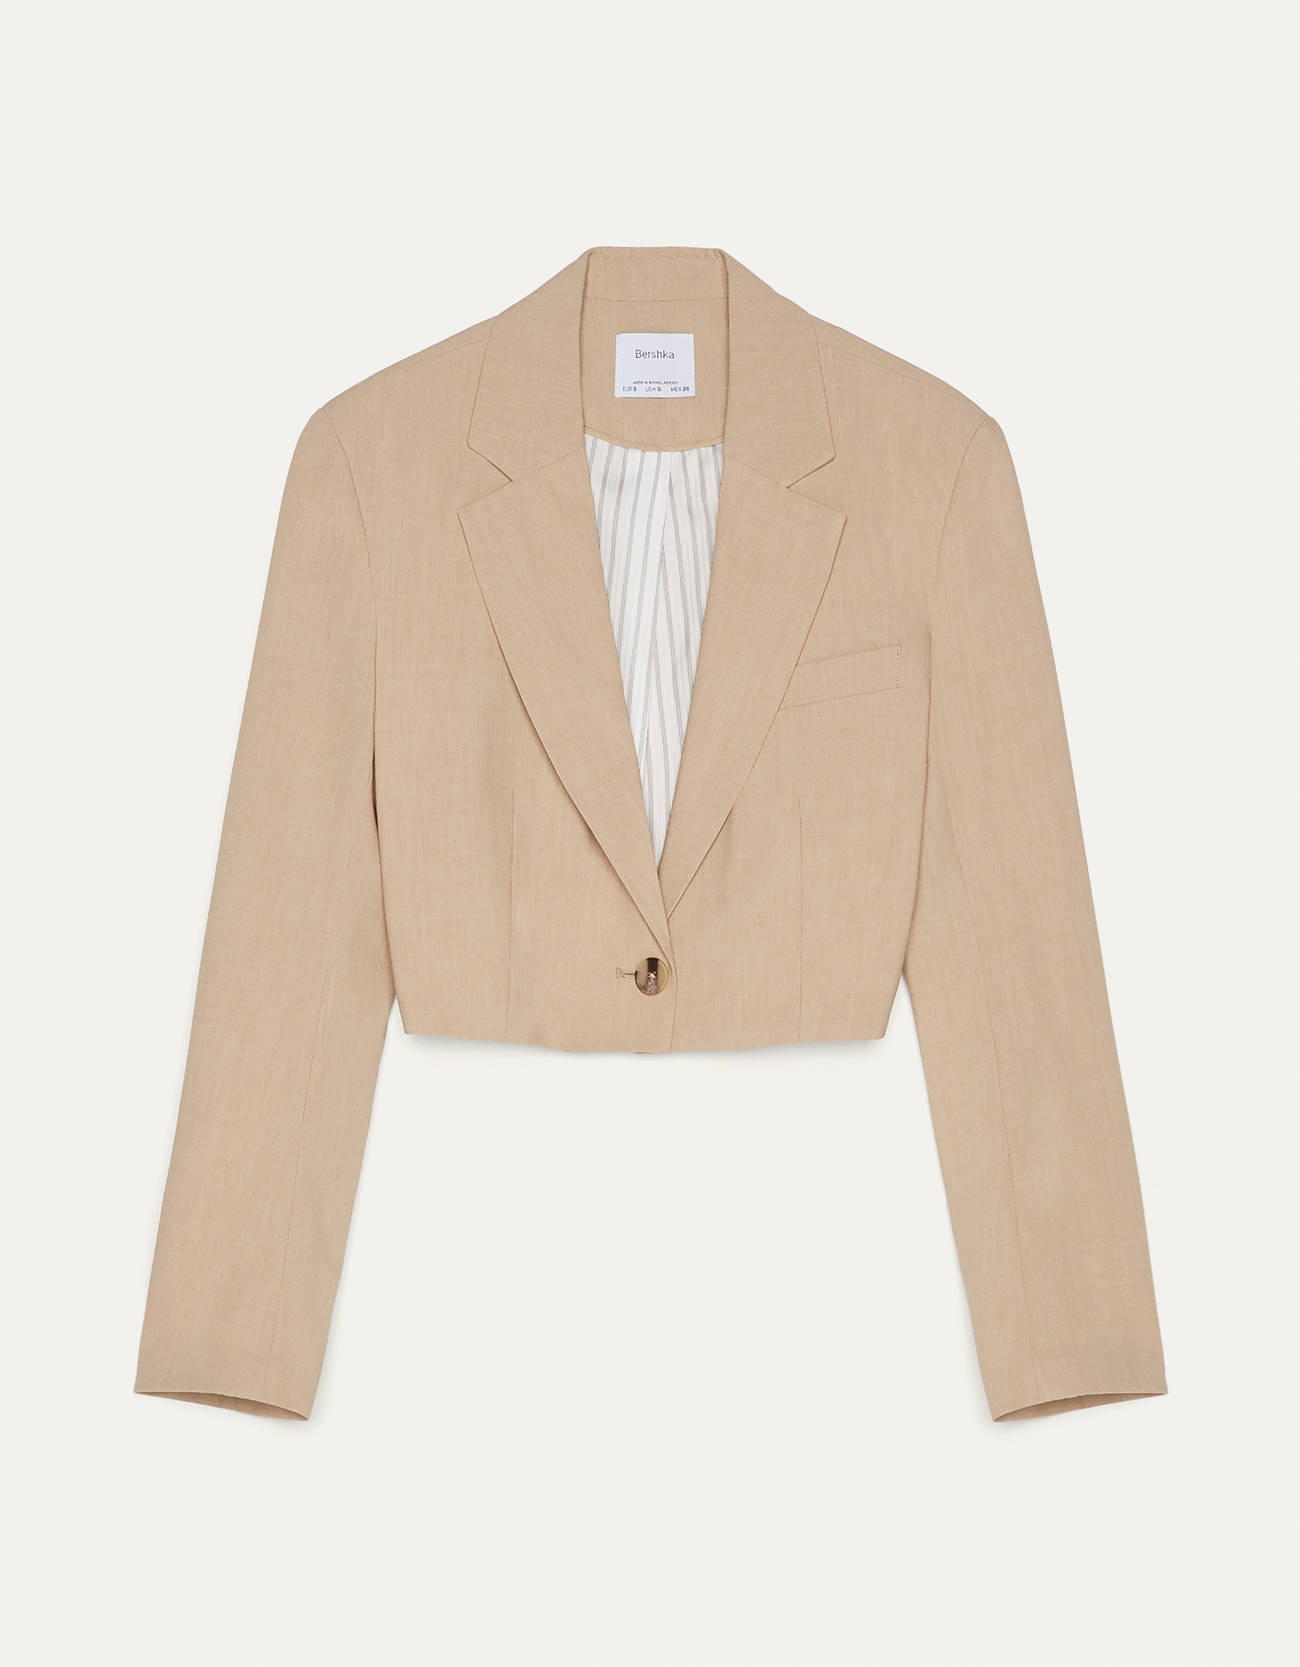 Blazer cropped de color beige.